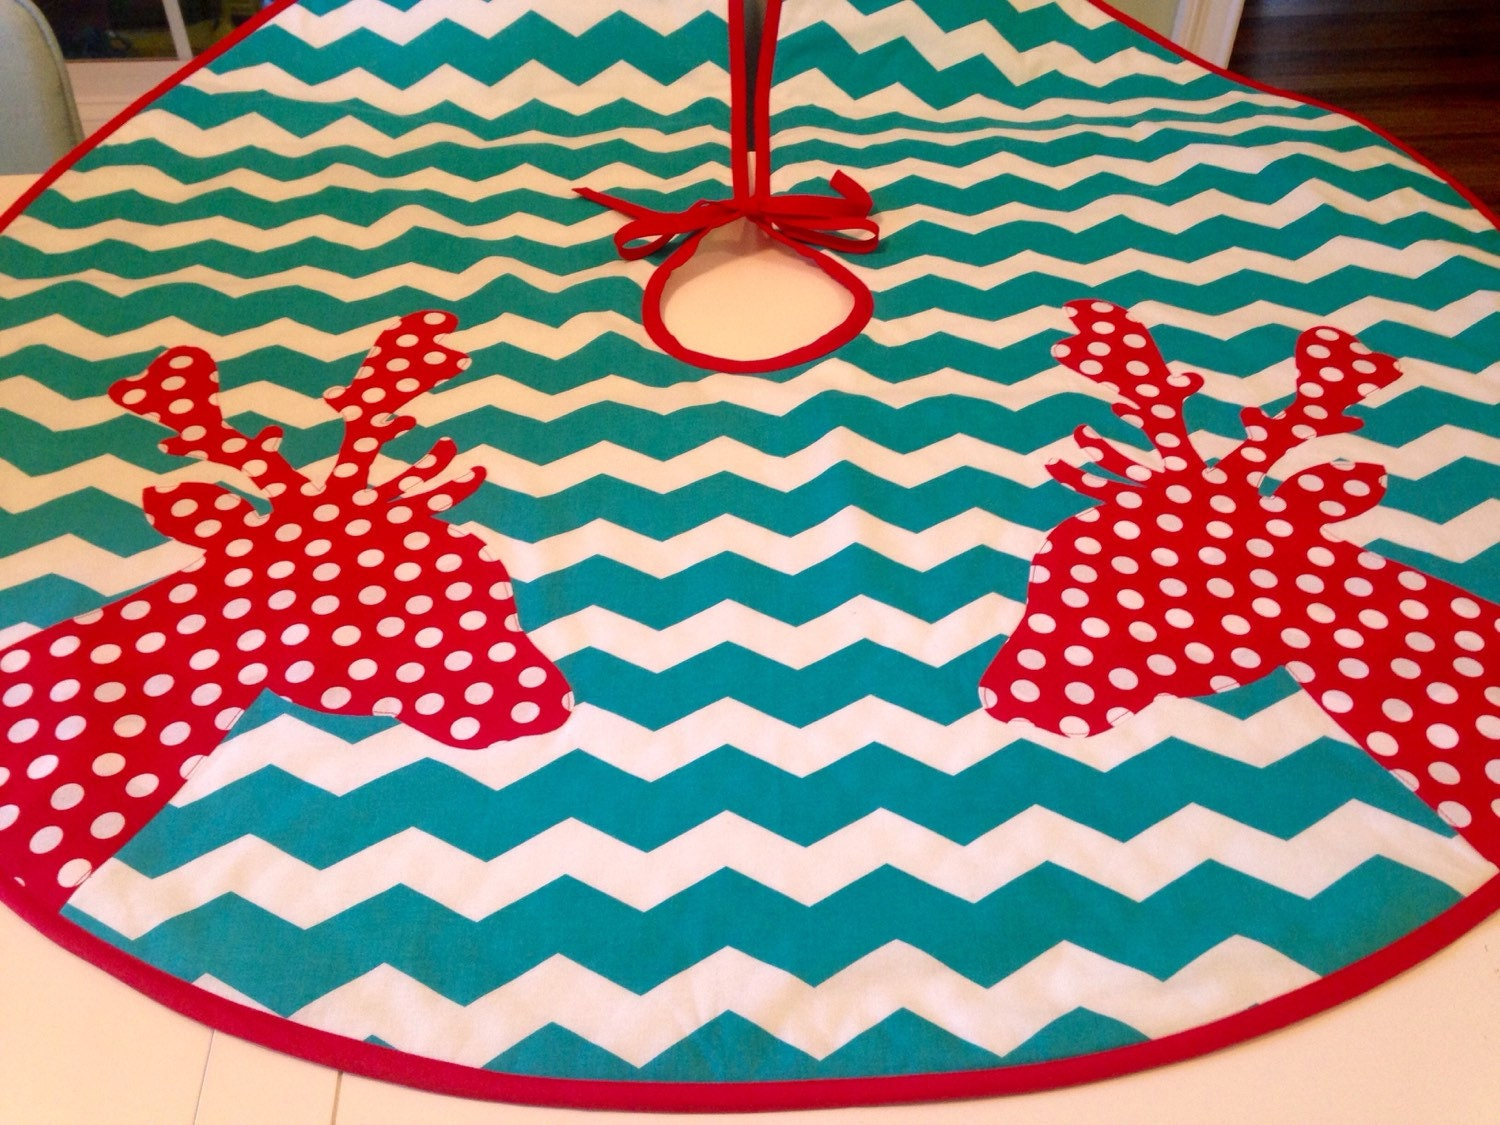 Modern tree skirt with red polka dot deer on teal and white